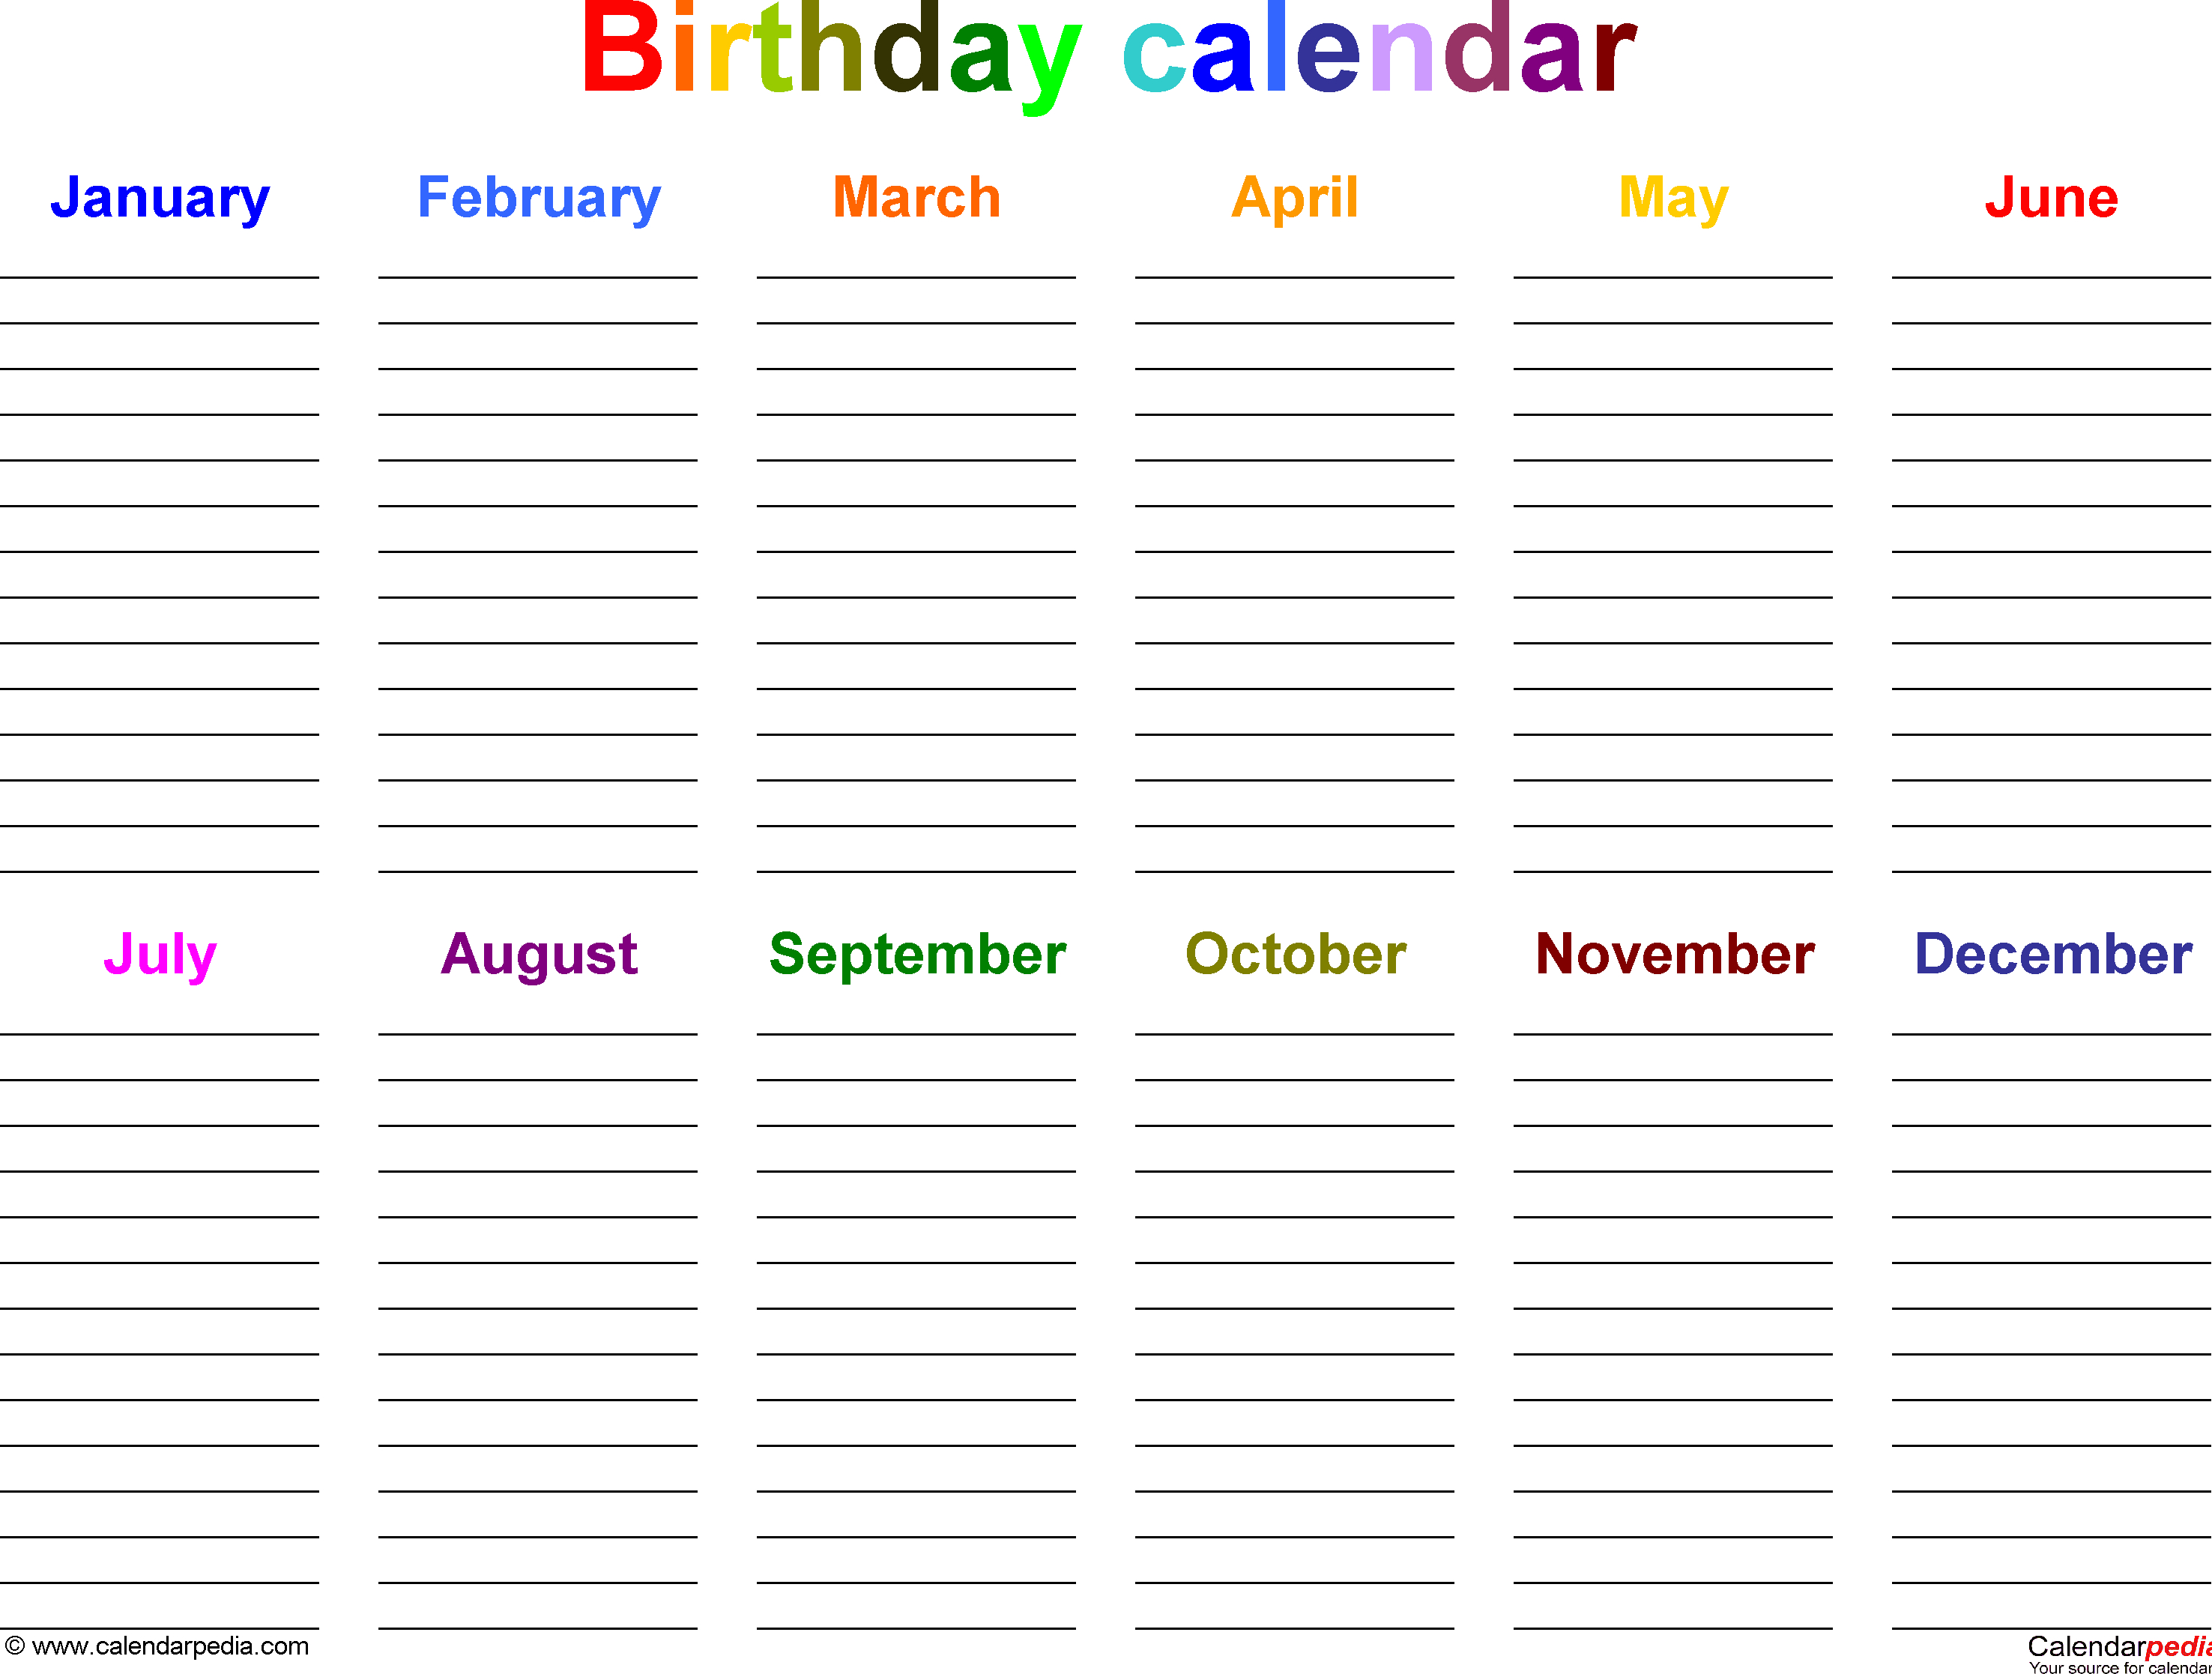 Excel Template For Birthday Calendar In Color (Landscape Free Birthday Calendar For The Workplace